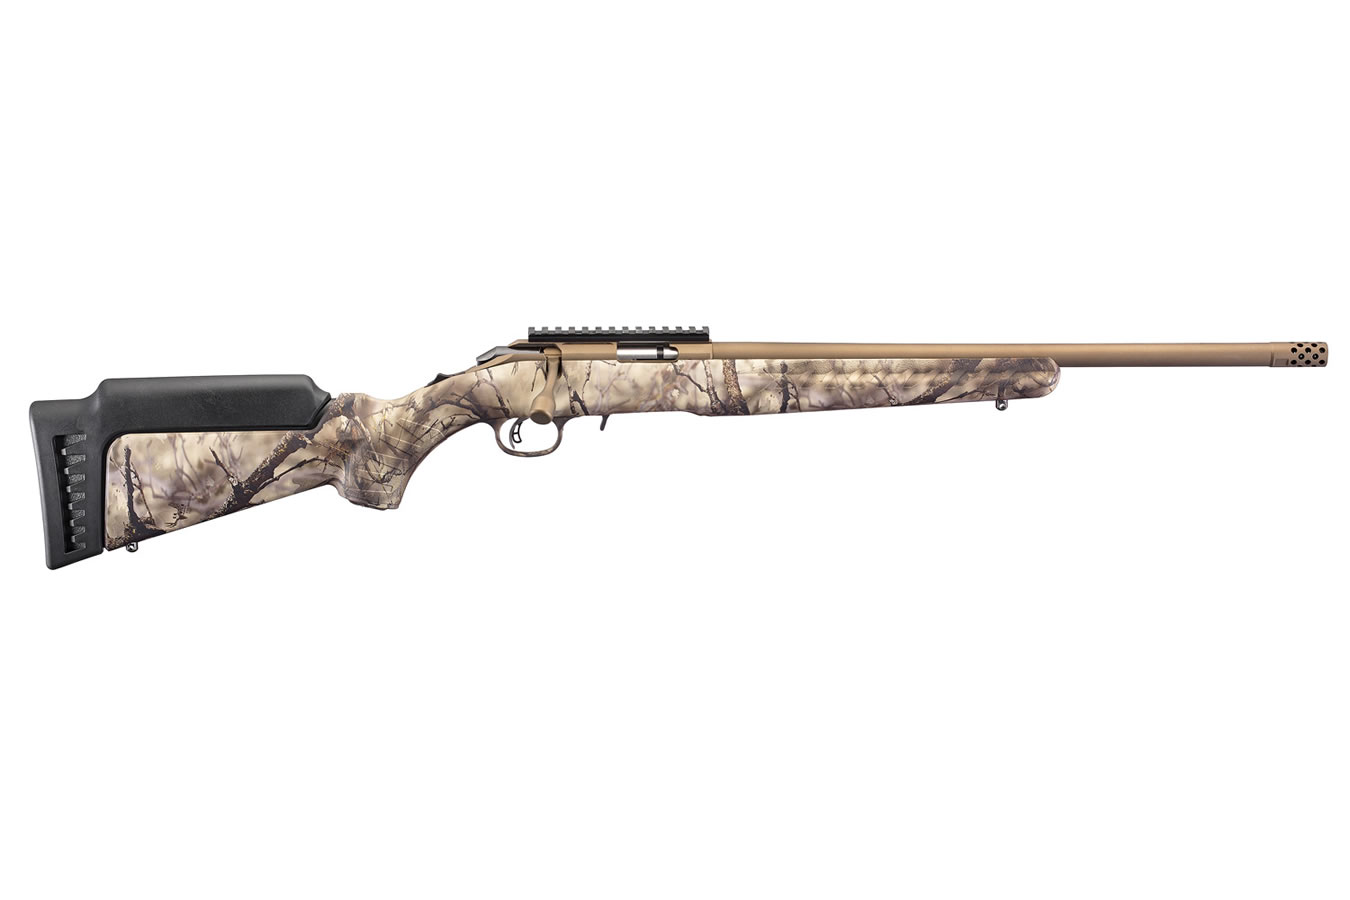 No. 13 Best Selling: RUGER AMERICAN RIMFIRE 22 MAGNUM 18 IN THREADED BBL BRONZE CERAKOTE GO WILD CAMO STOCK